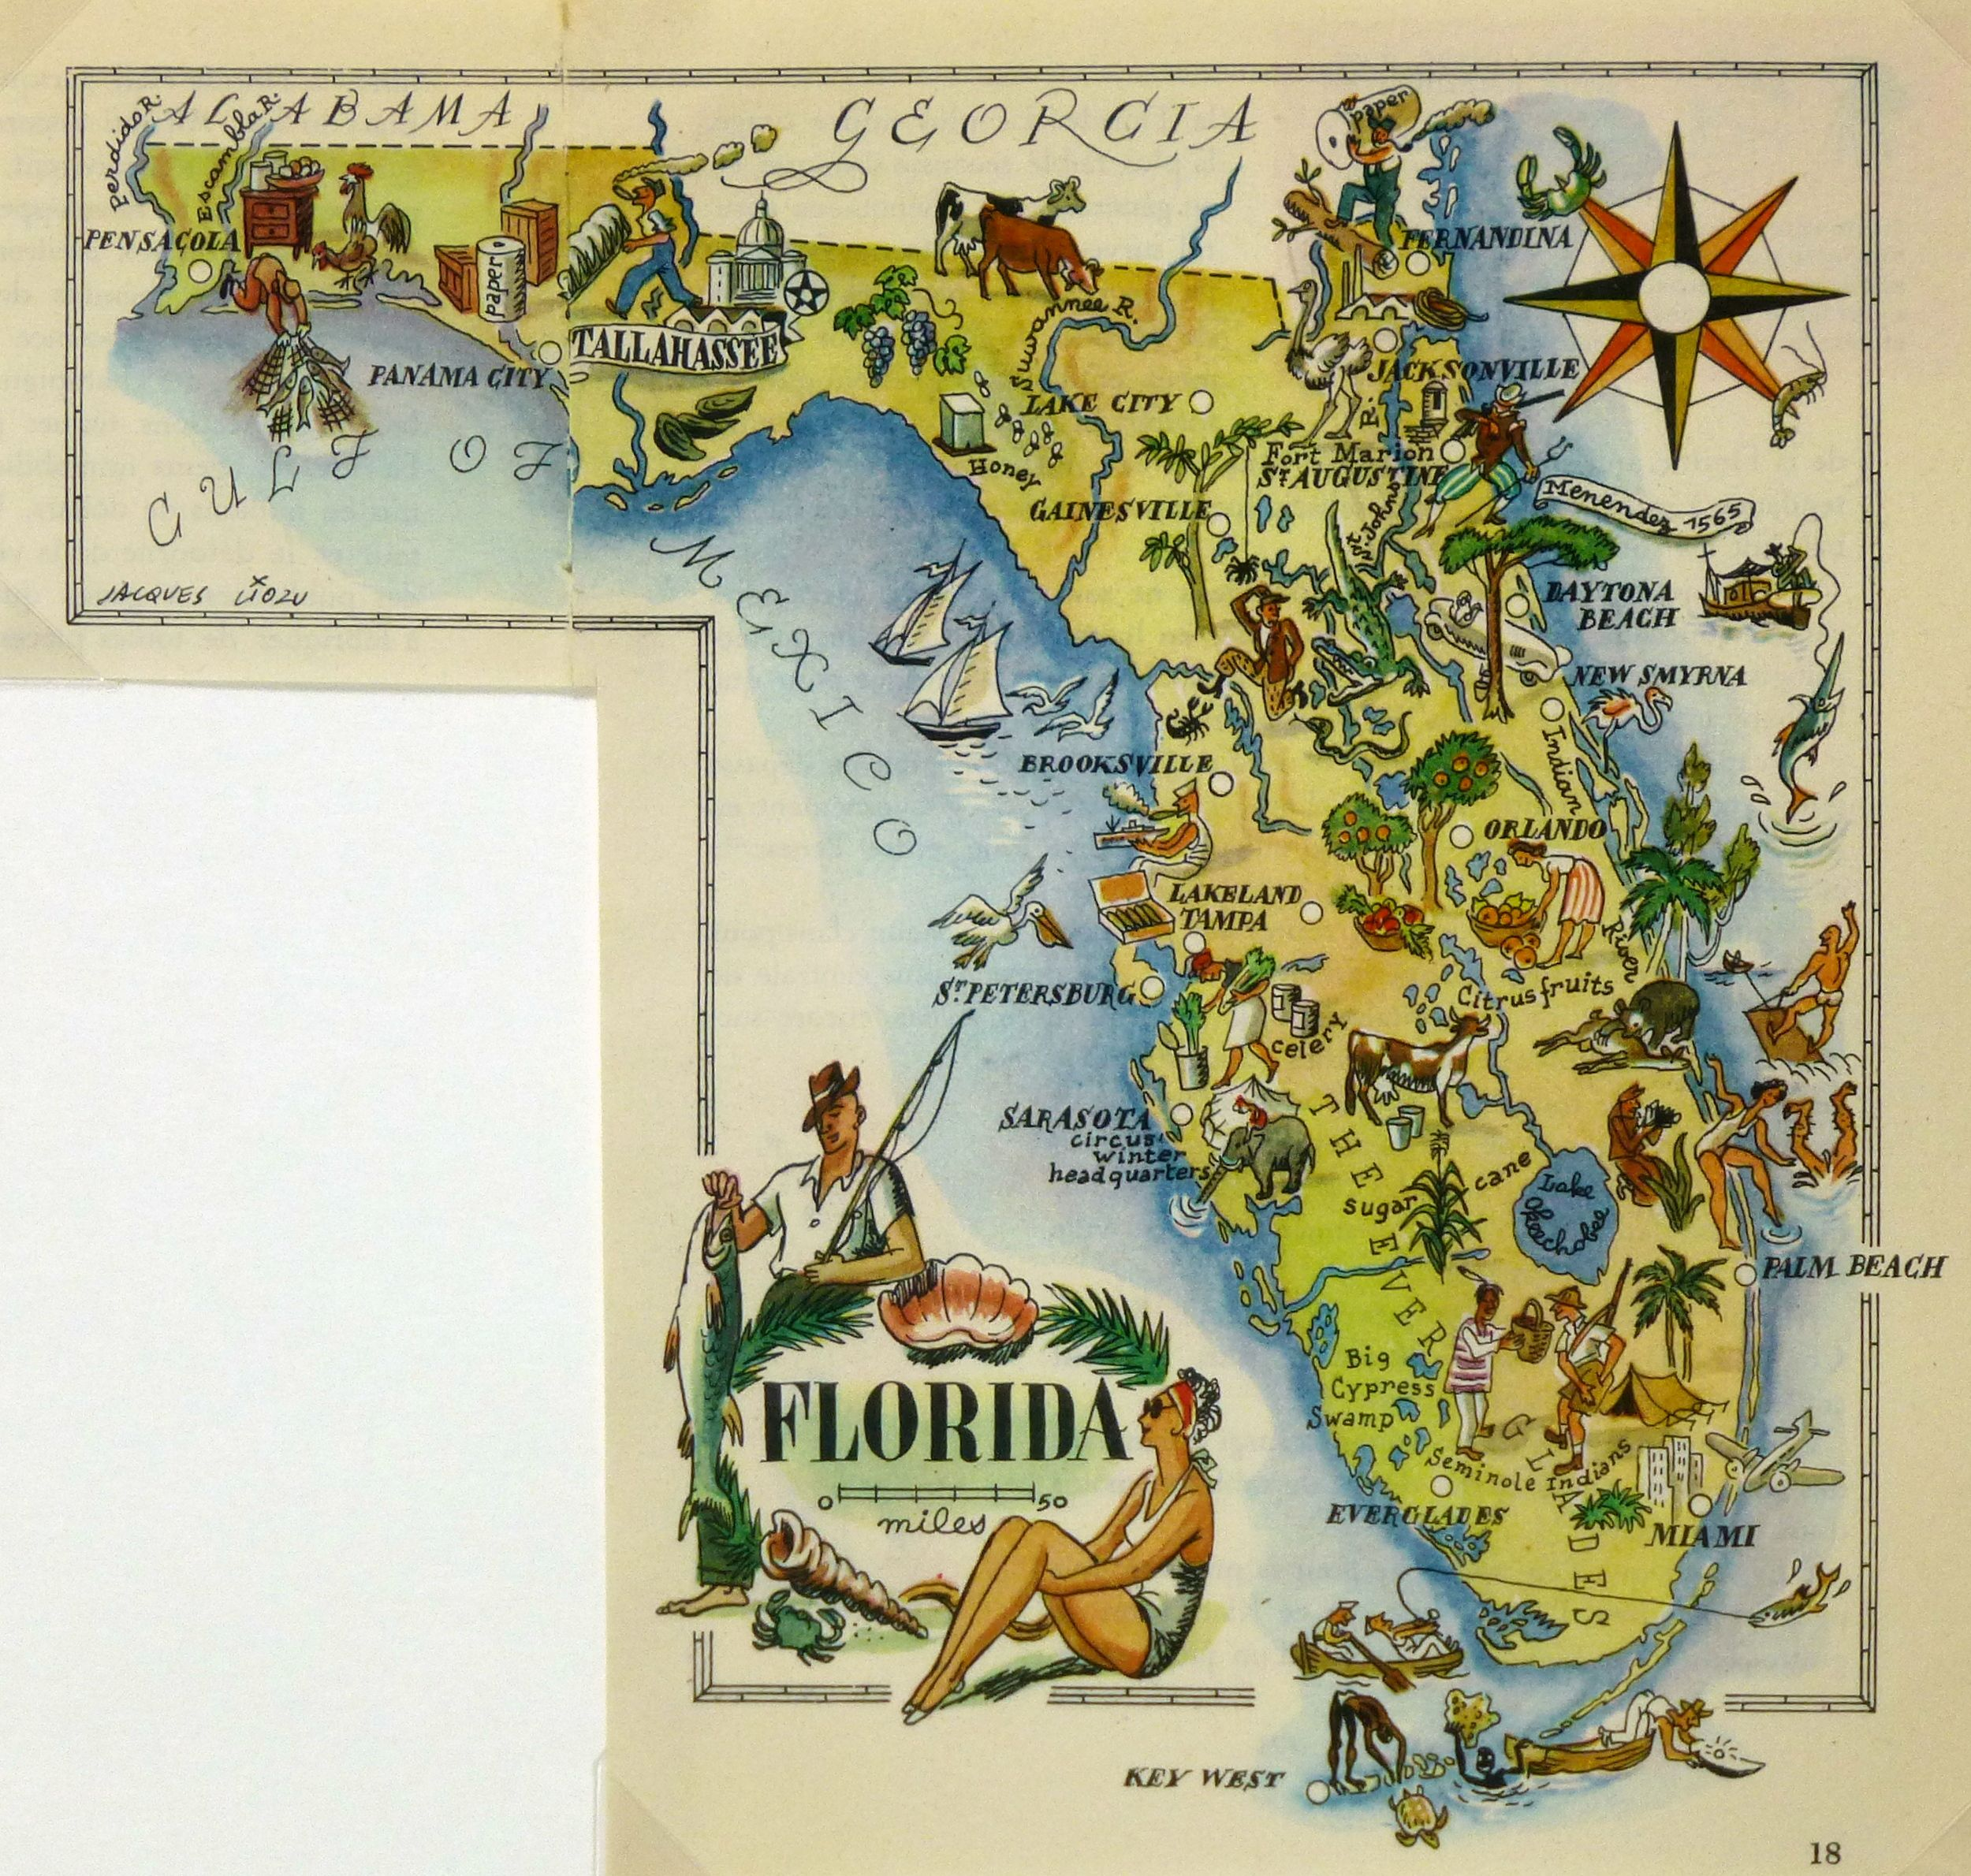 Vintage pictorial map of Florida by Jacqus Lizou in 1946.